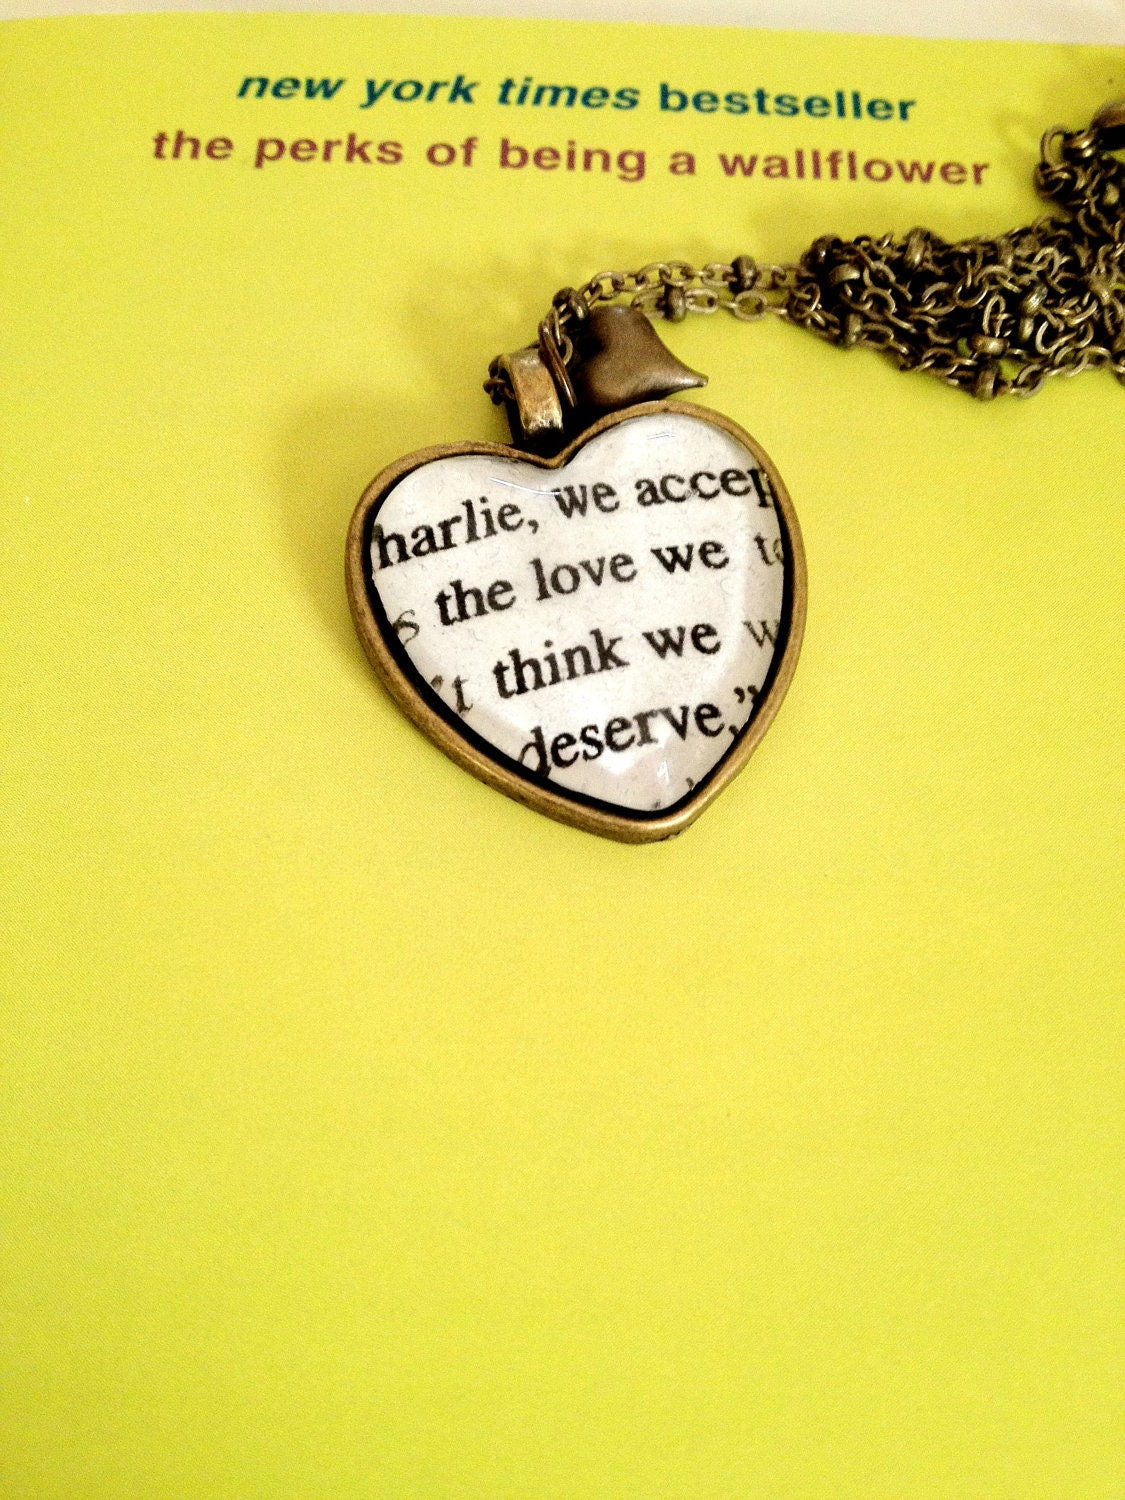 Perks of Being a Wallflower Antiqued Bronze Heart Book Page Necklace - AuthoredAdornments